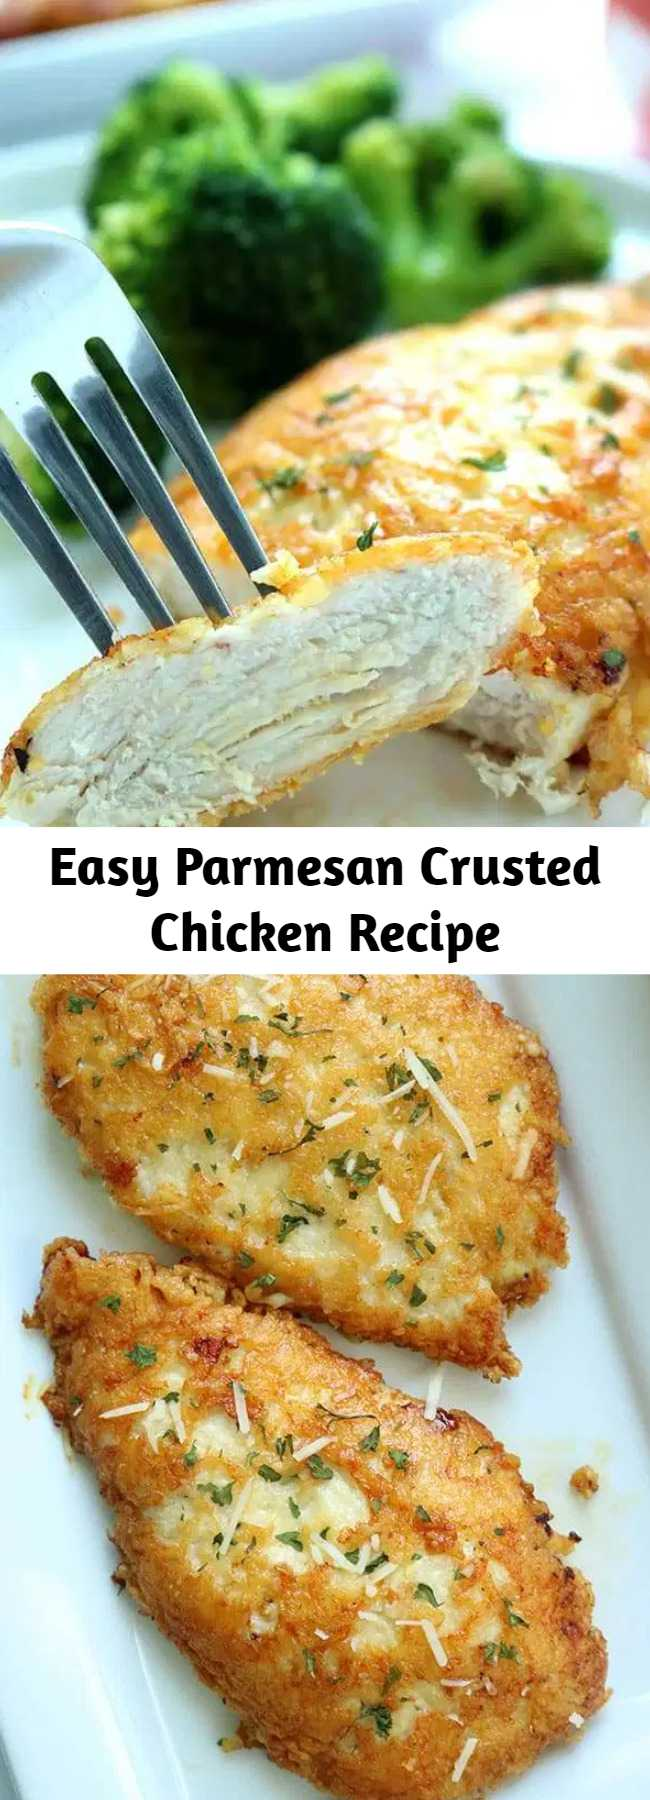 Easy Parmesan Crusted Chicken Recipe - This Parmesan Crusted Chicken is an easy meal idea. We use pounded thin chicken breasts, coat in a delicious Parmesan coating, and then fried to make them crispy. Add this chicken idea to your dinner this week.